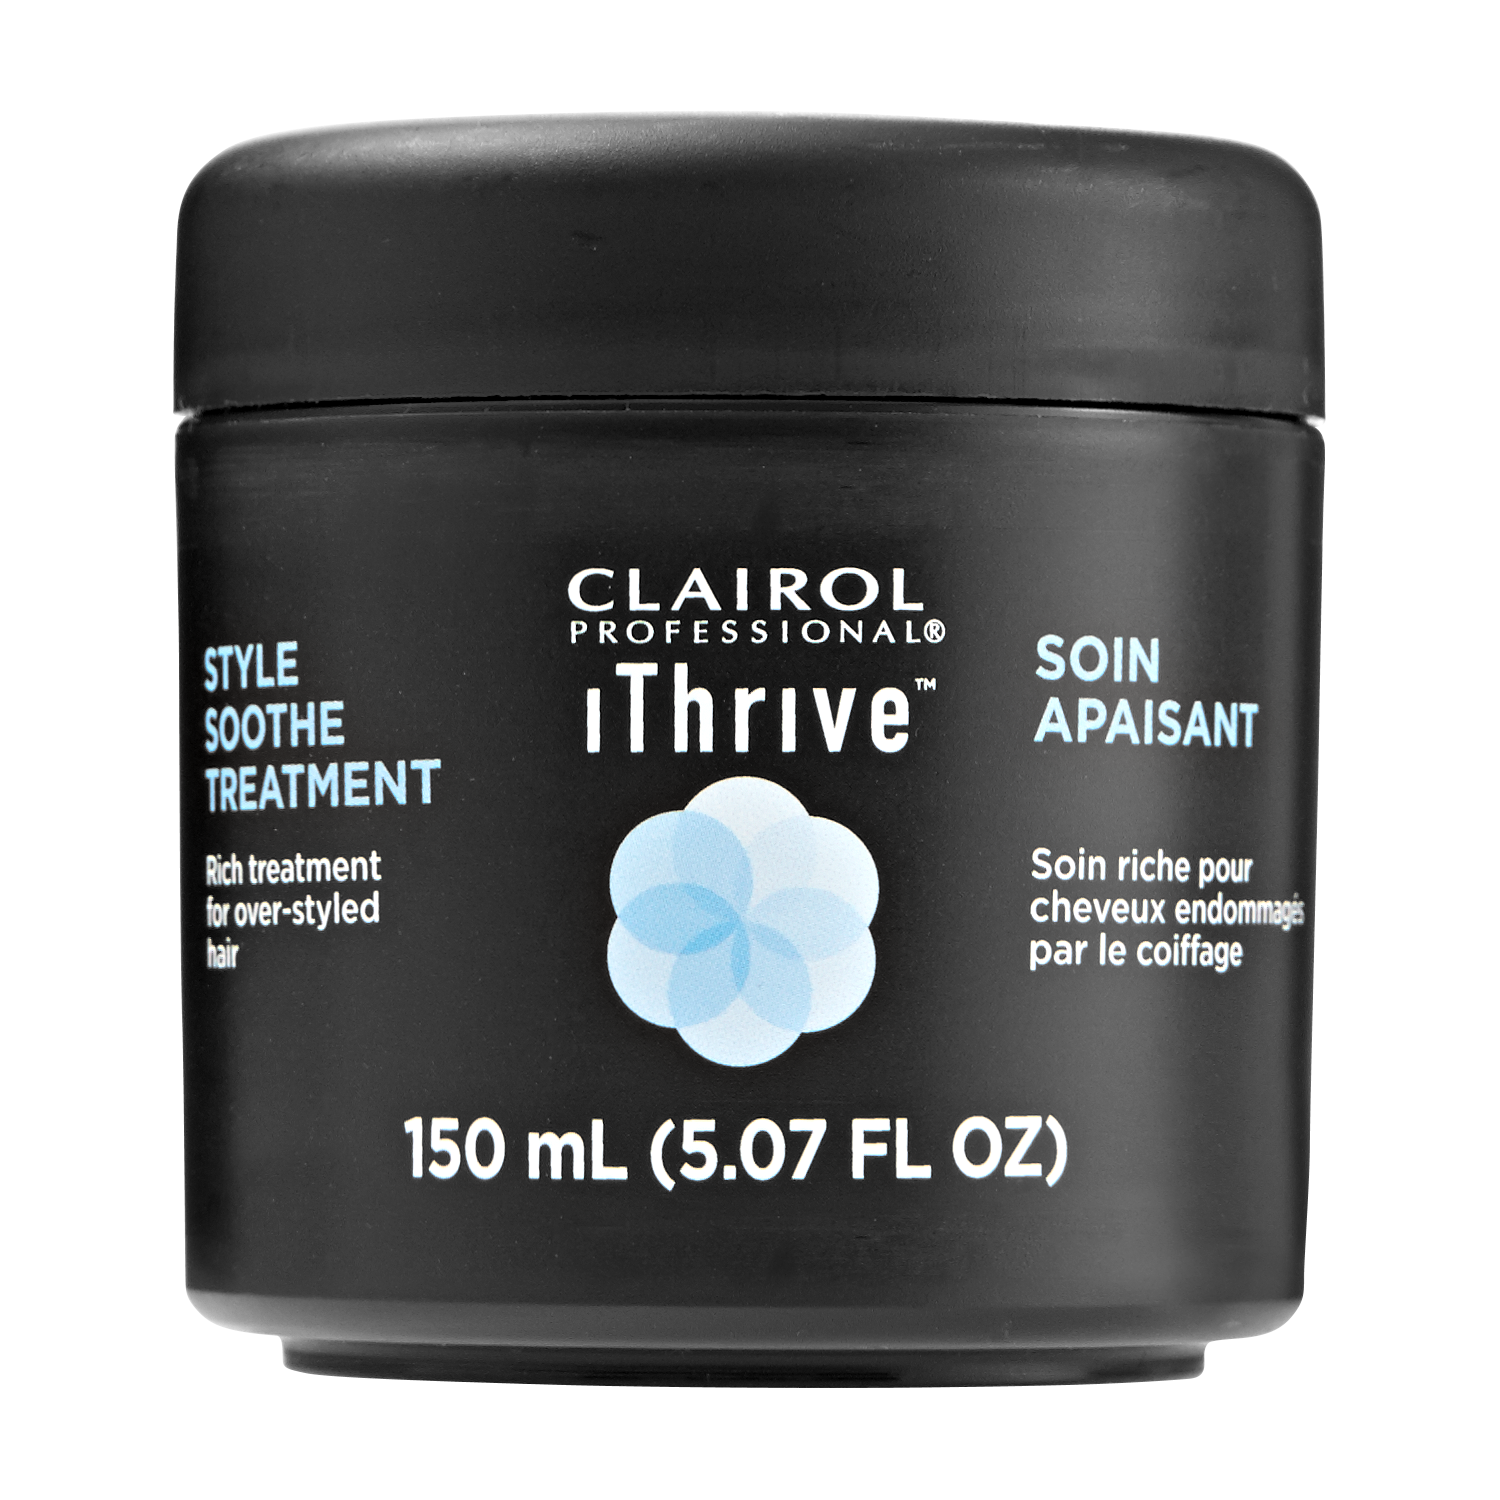 Clairol Professional iThrive Style Soothe Treatment, part of the iThrive Style Soothe System, is specifically formulated with StylEASE to soothe over-styled, unmanageable hair.